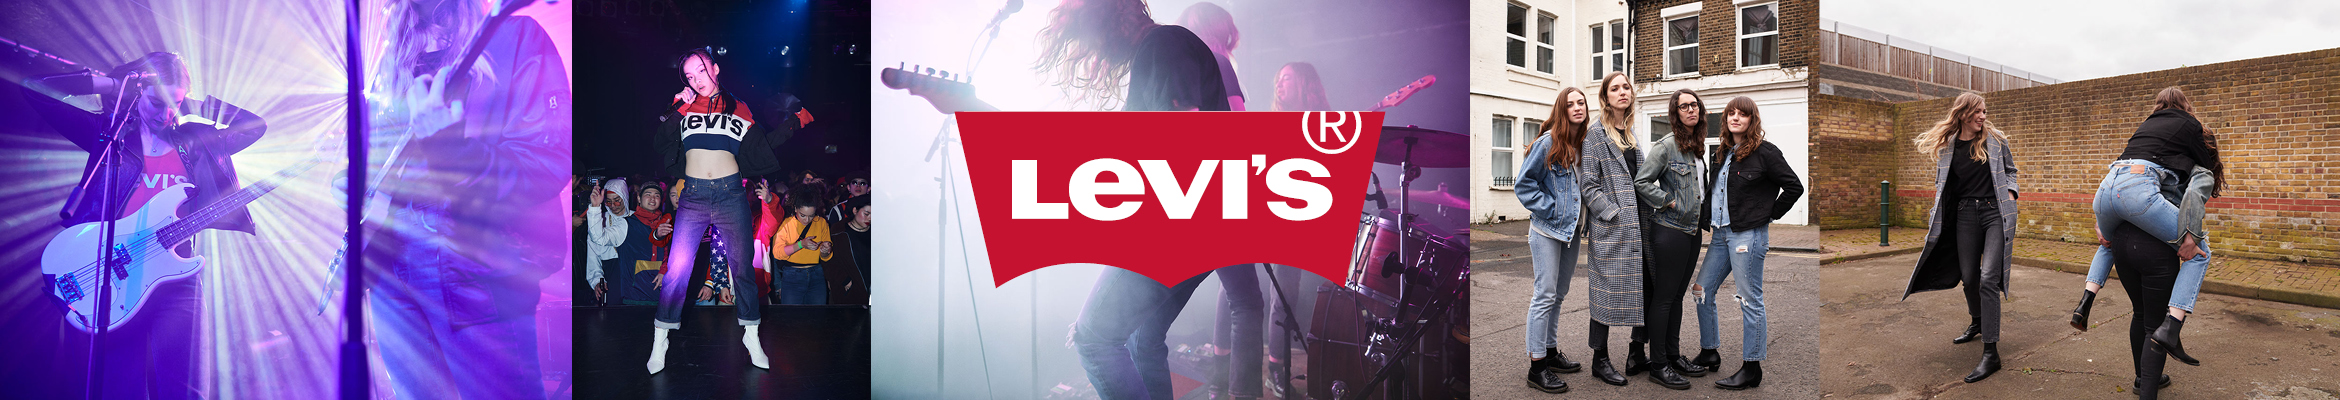 Levis_FW18_WOMAN_banner_2340px_400px_BOOZT